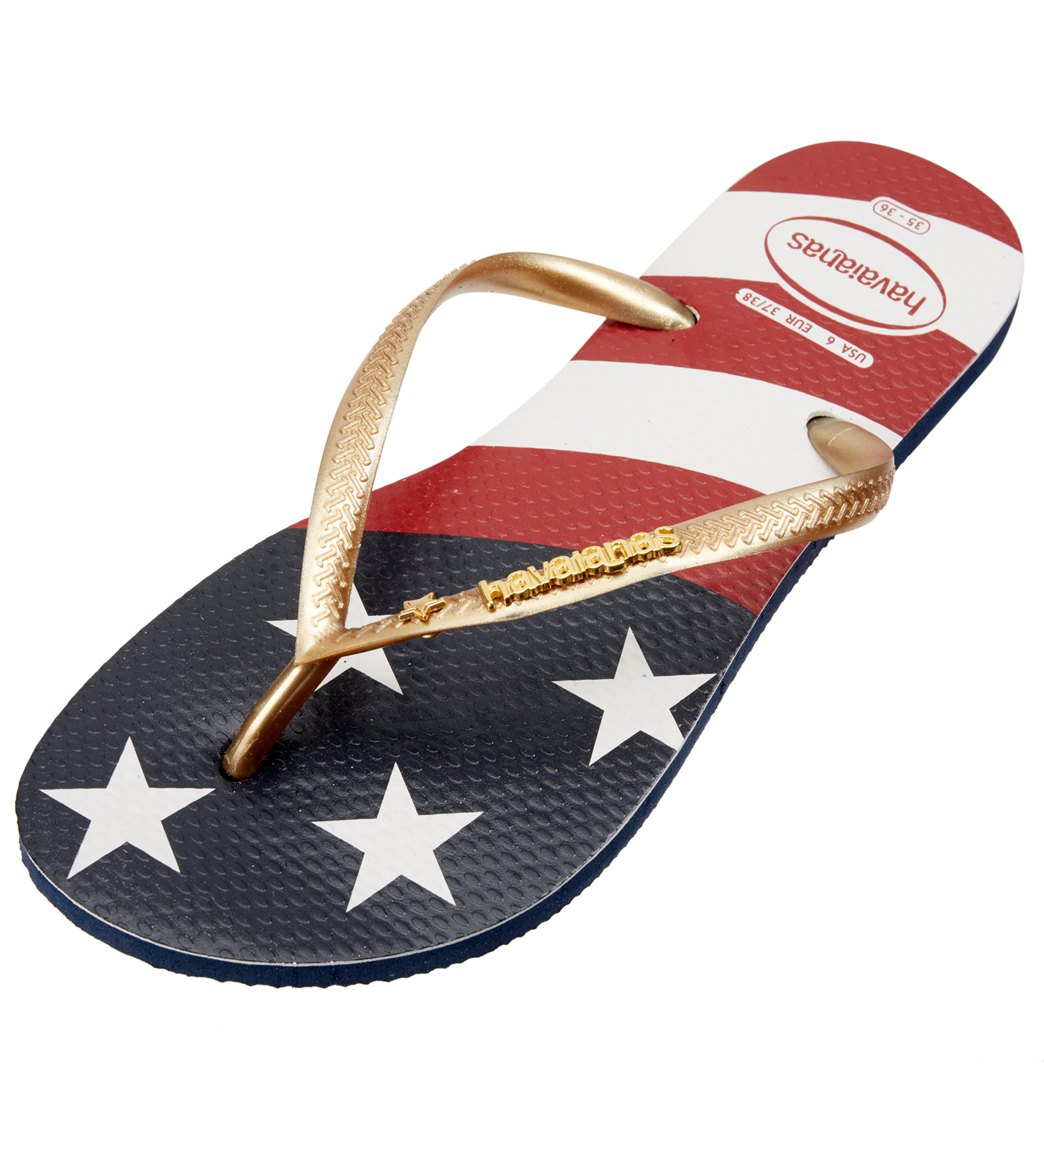 1d678dcd6dddfe Havaianas Women s Slim Wavy USA Flag Flip Flop at SwimOutlet.com